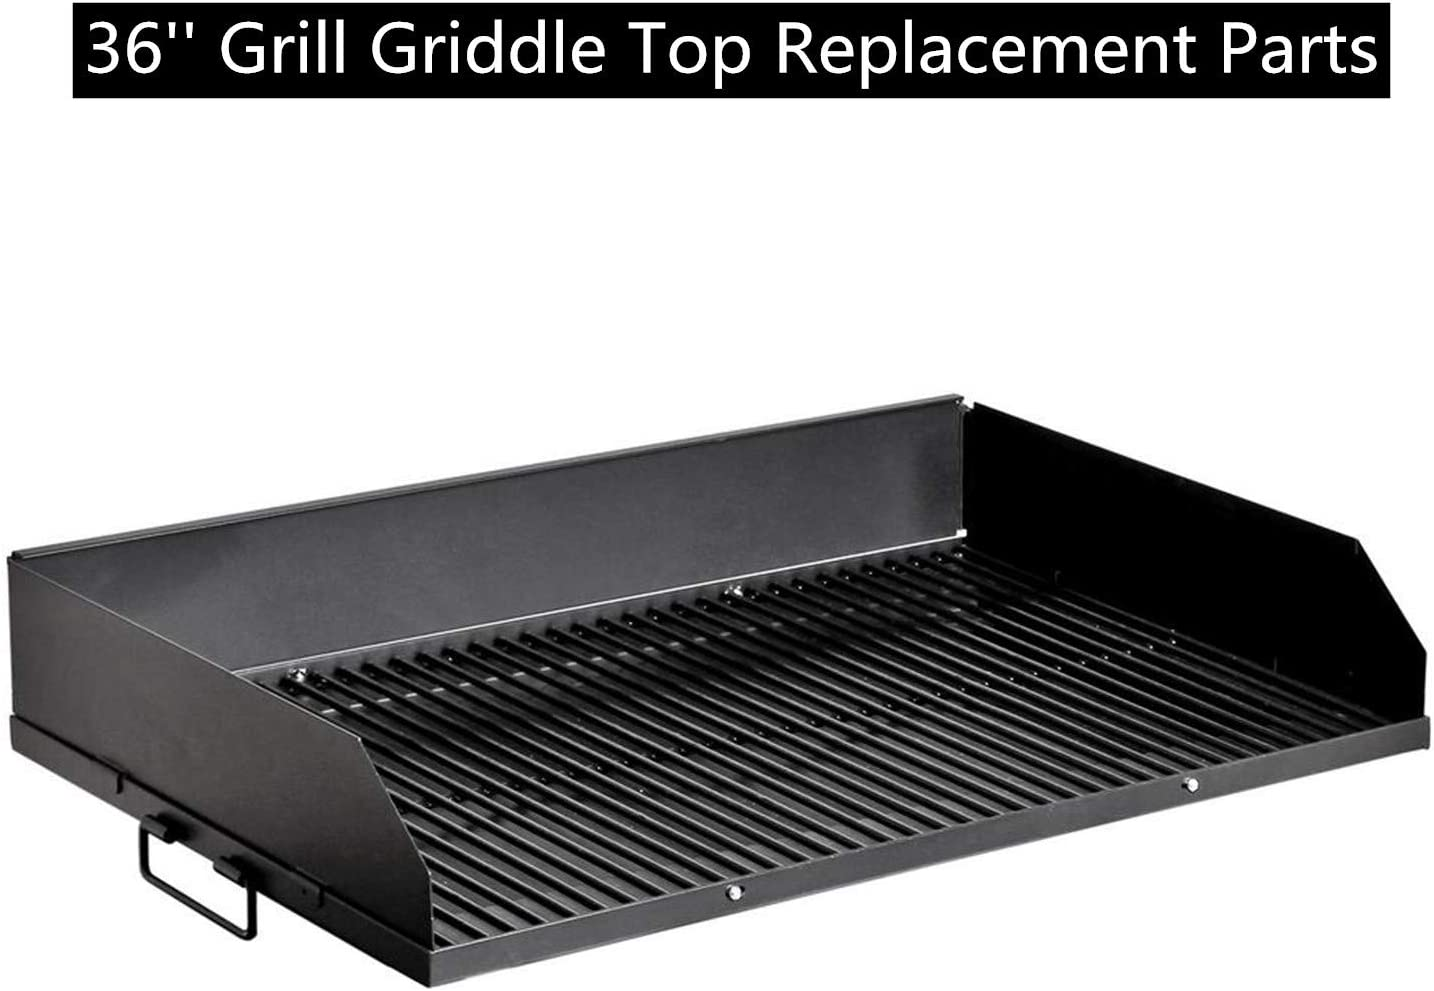 """Camping Stove Great for Hunting Portable Gas Grill and Griddle Combo Blackstone Grills Tailgater Two Open Burners /"""" Griddle Top Barbecue Box Fishing Adjustable Legs Renewed Tailgating and More"""